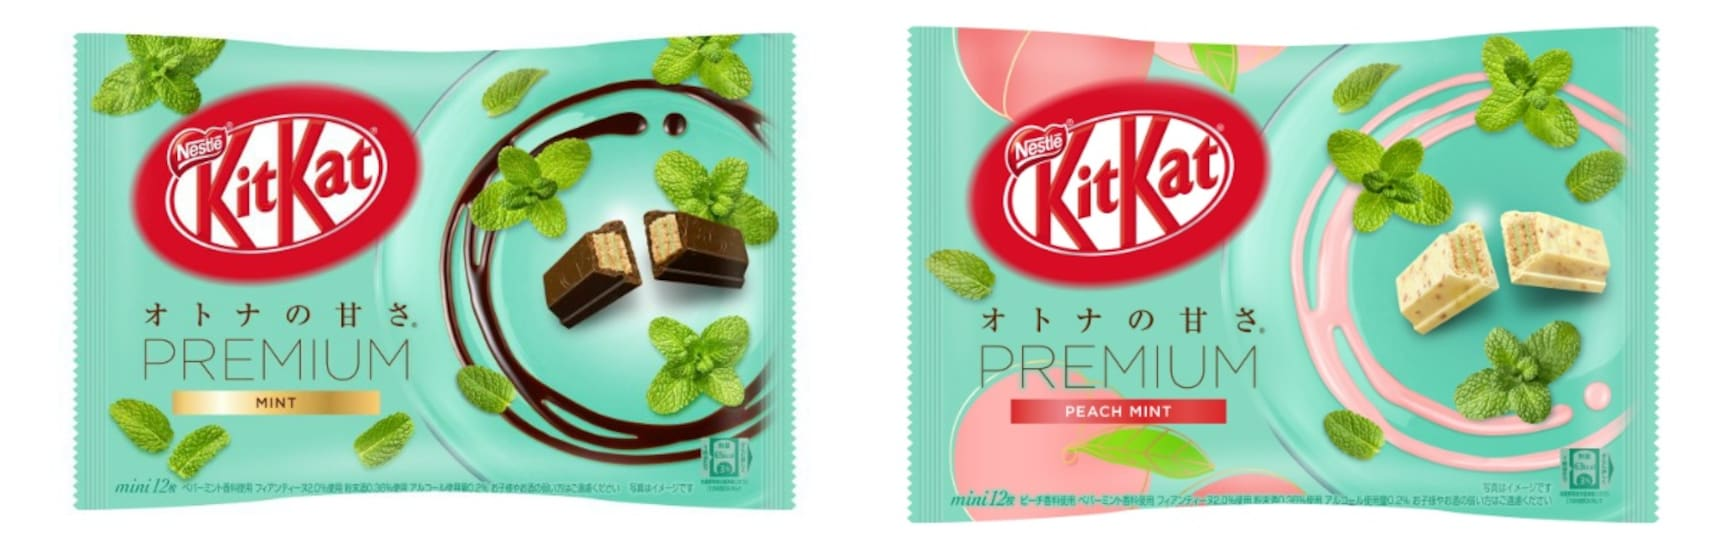 New Mint KitKat Flavors Sure to Refresh